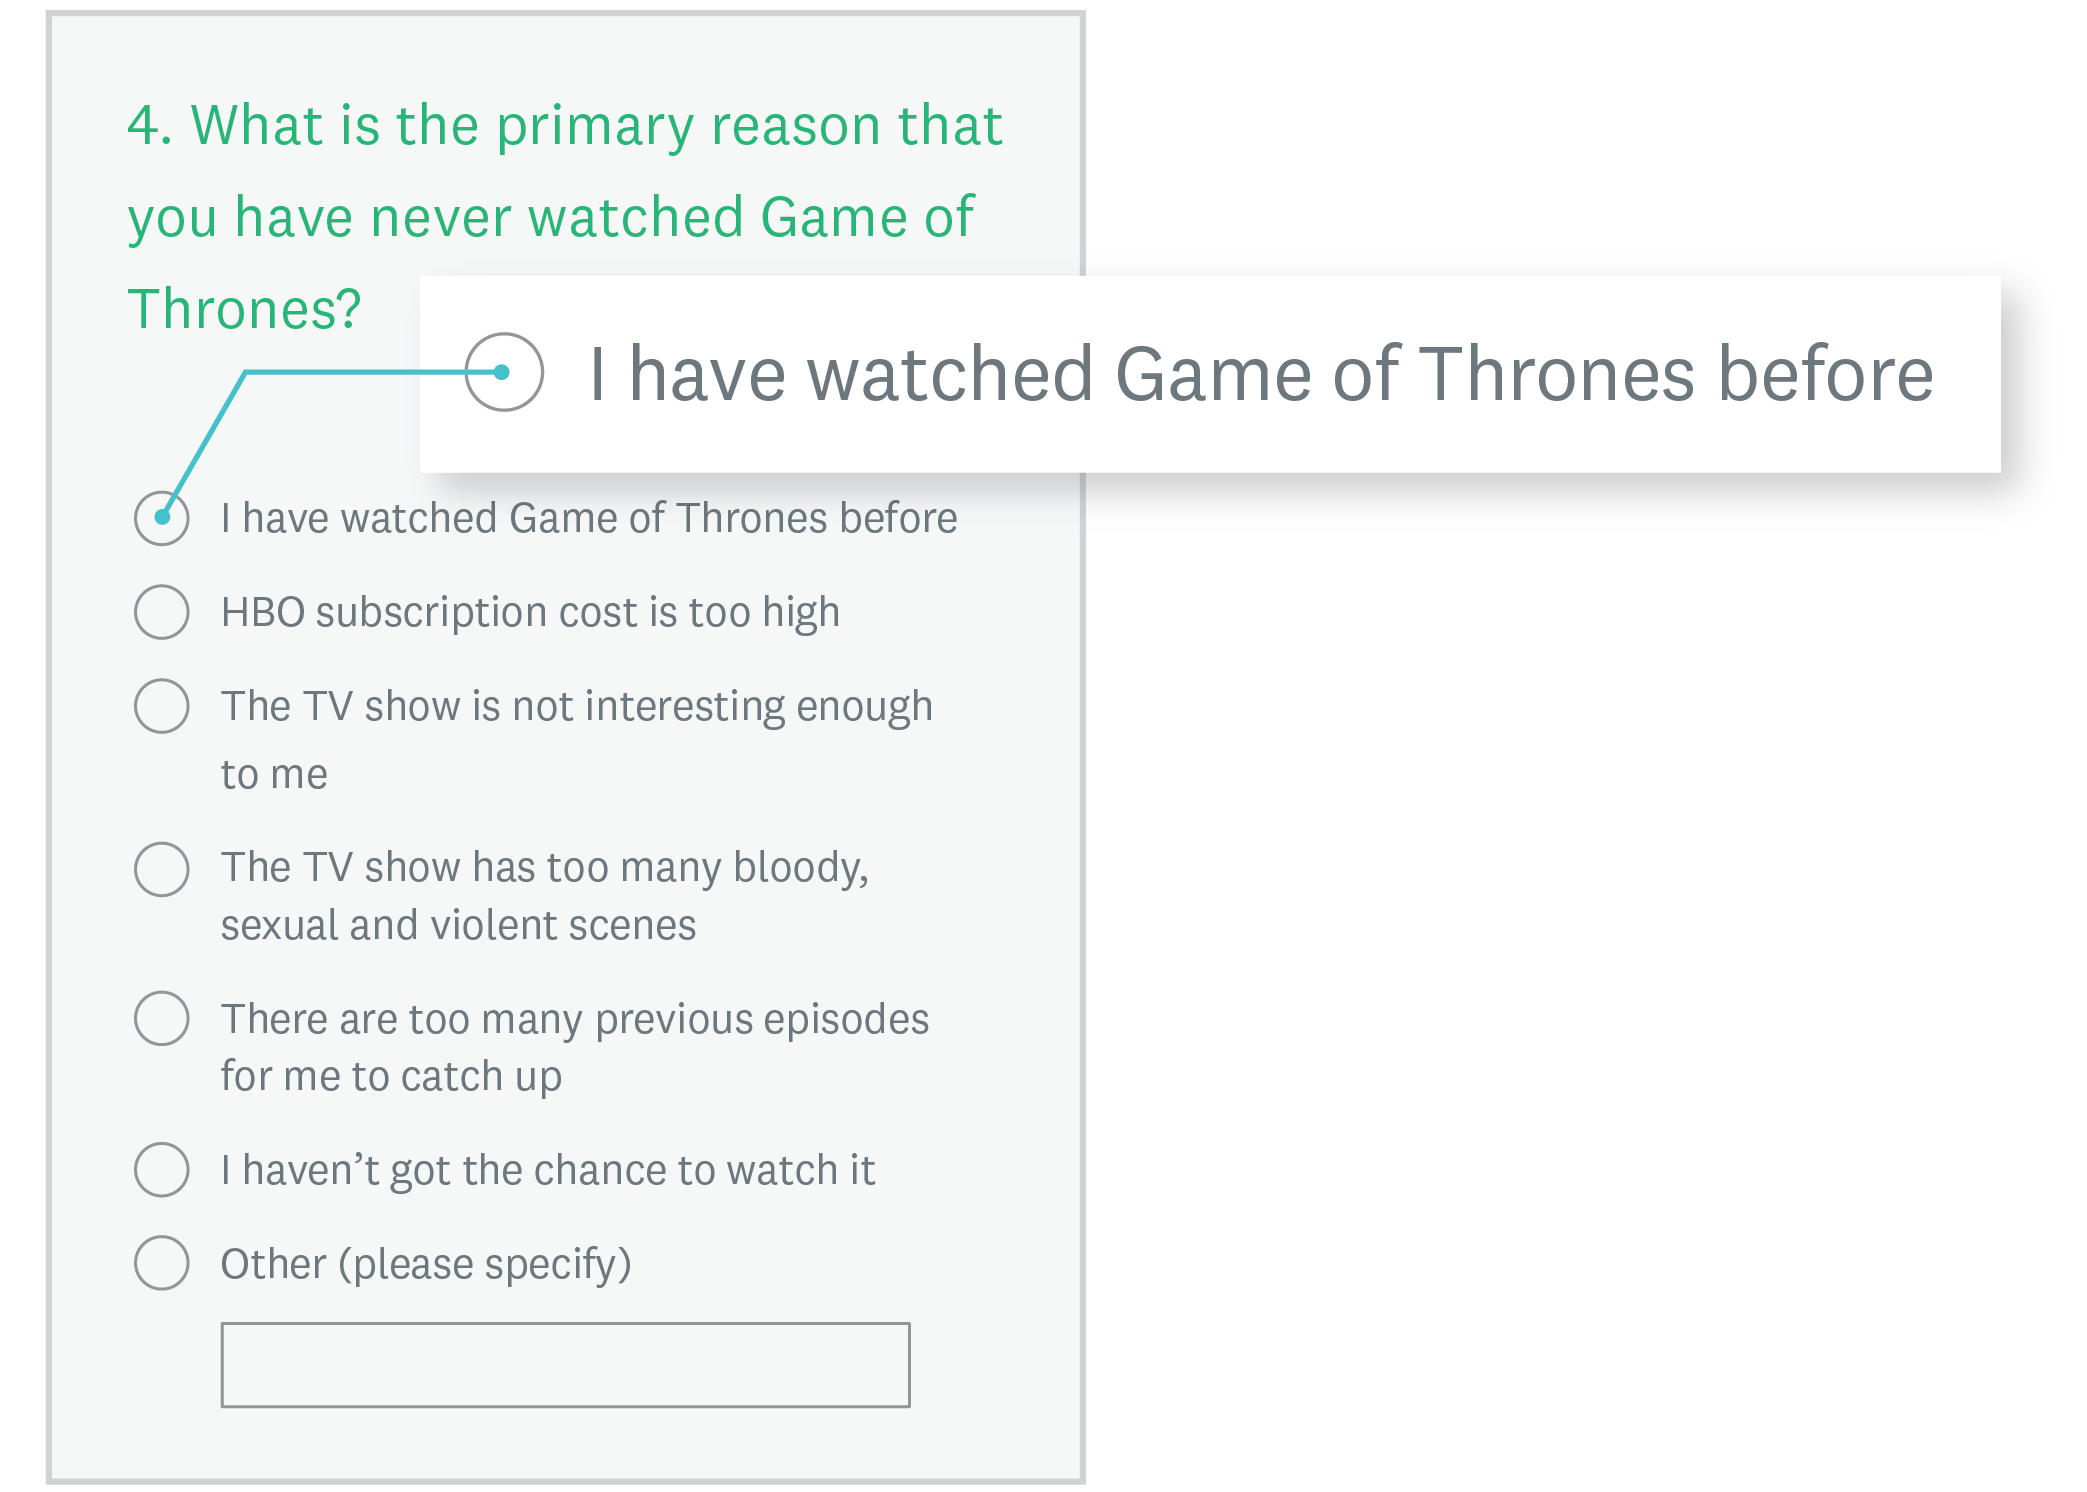 Game of Thrones question without skip logic